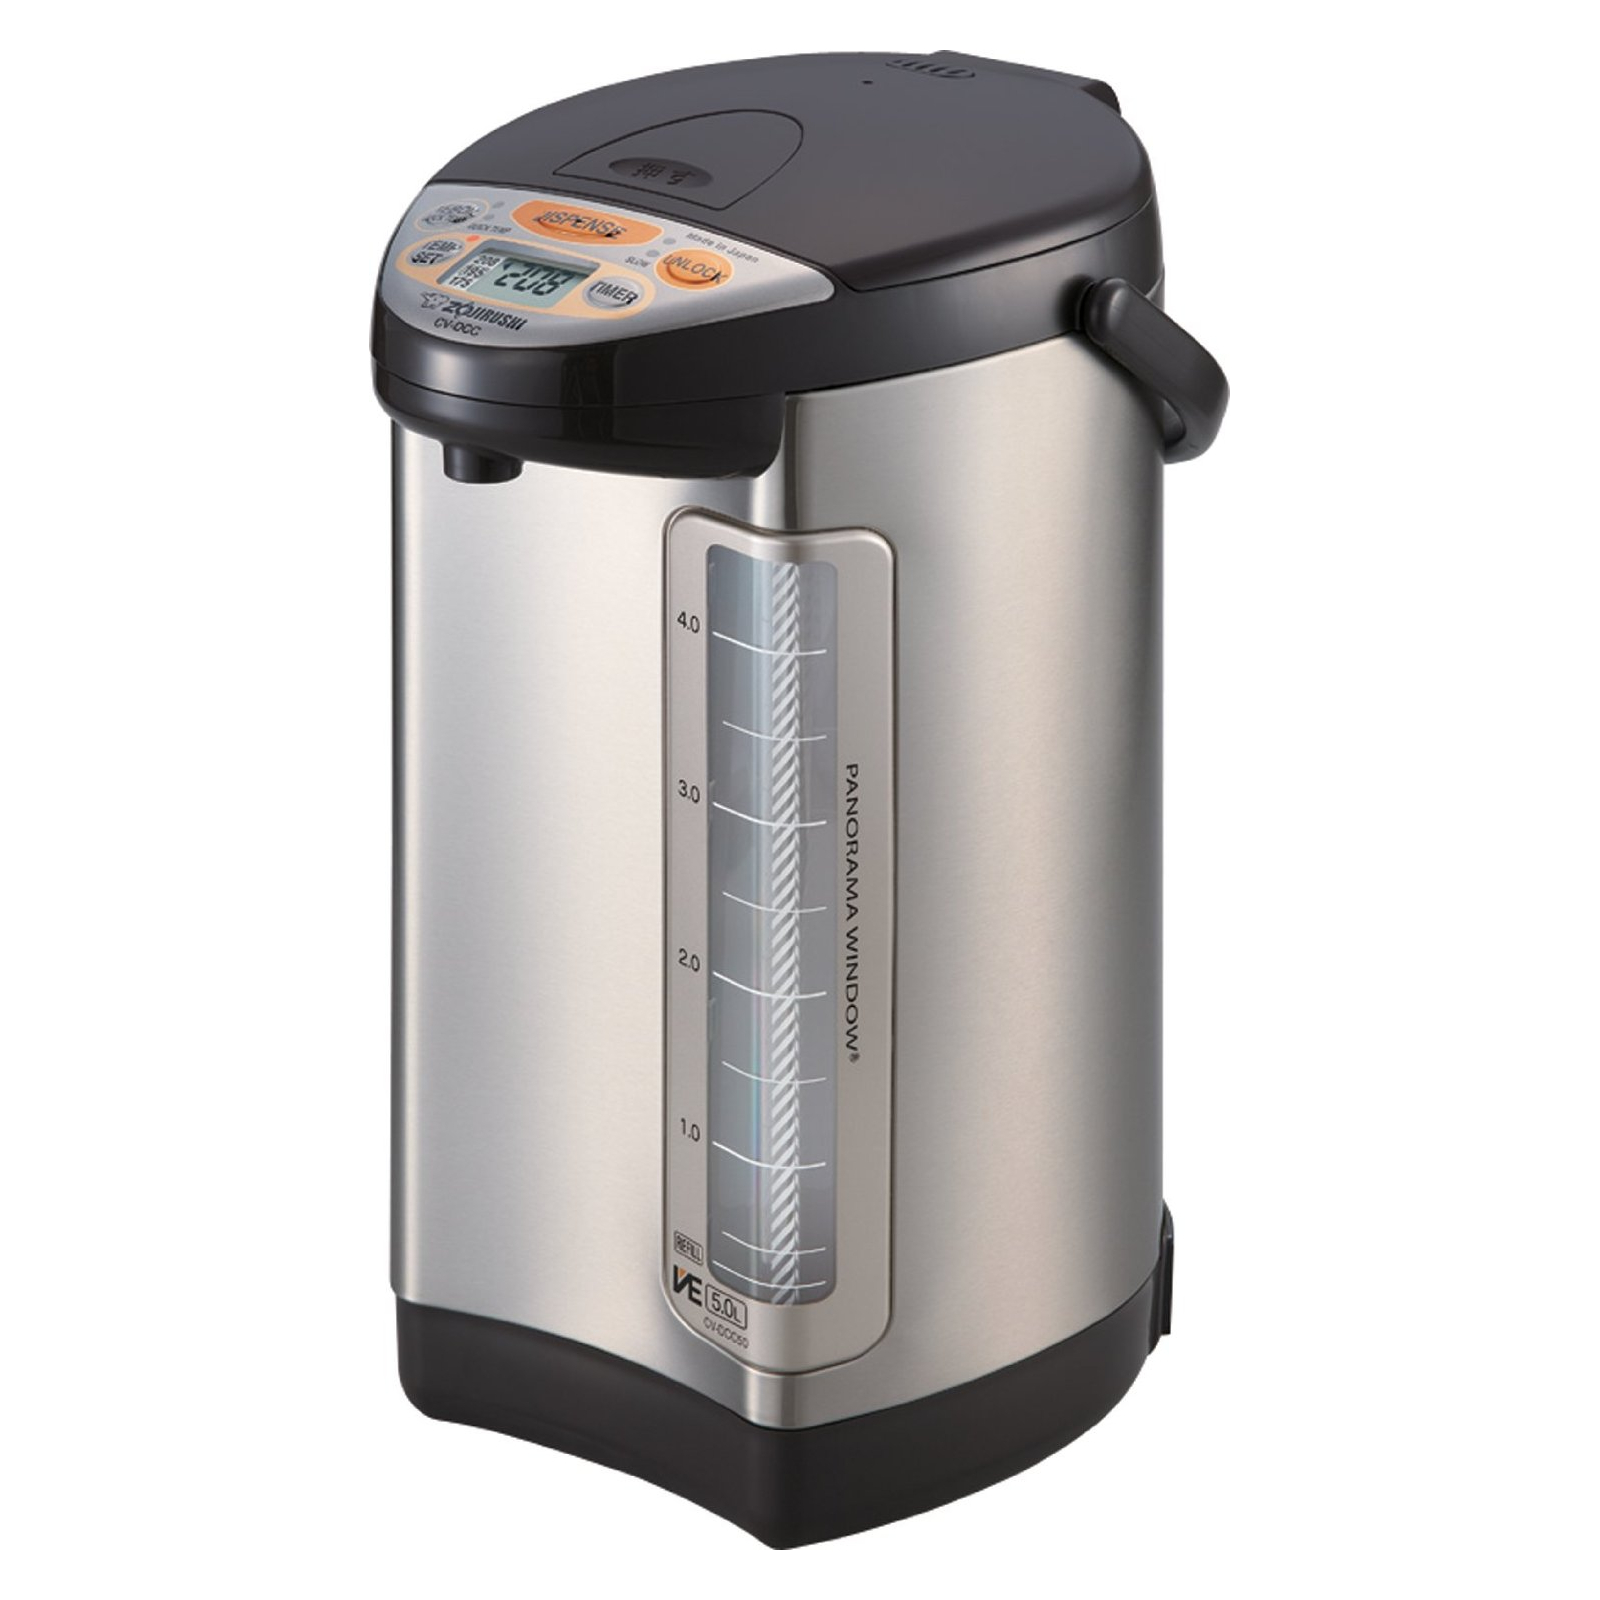 Zojirushi VE Hybrid Stainless Steel and Dark Brown 5 Liter Water Boiler and Warmer